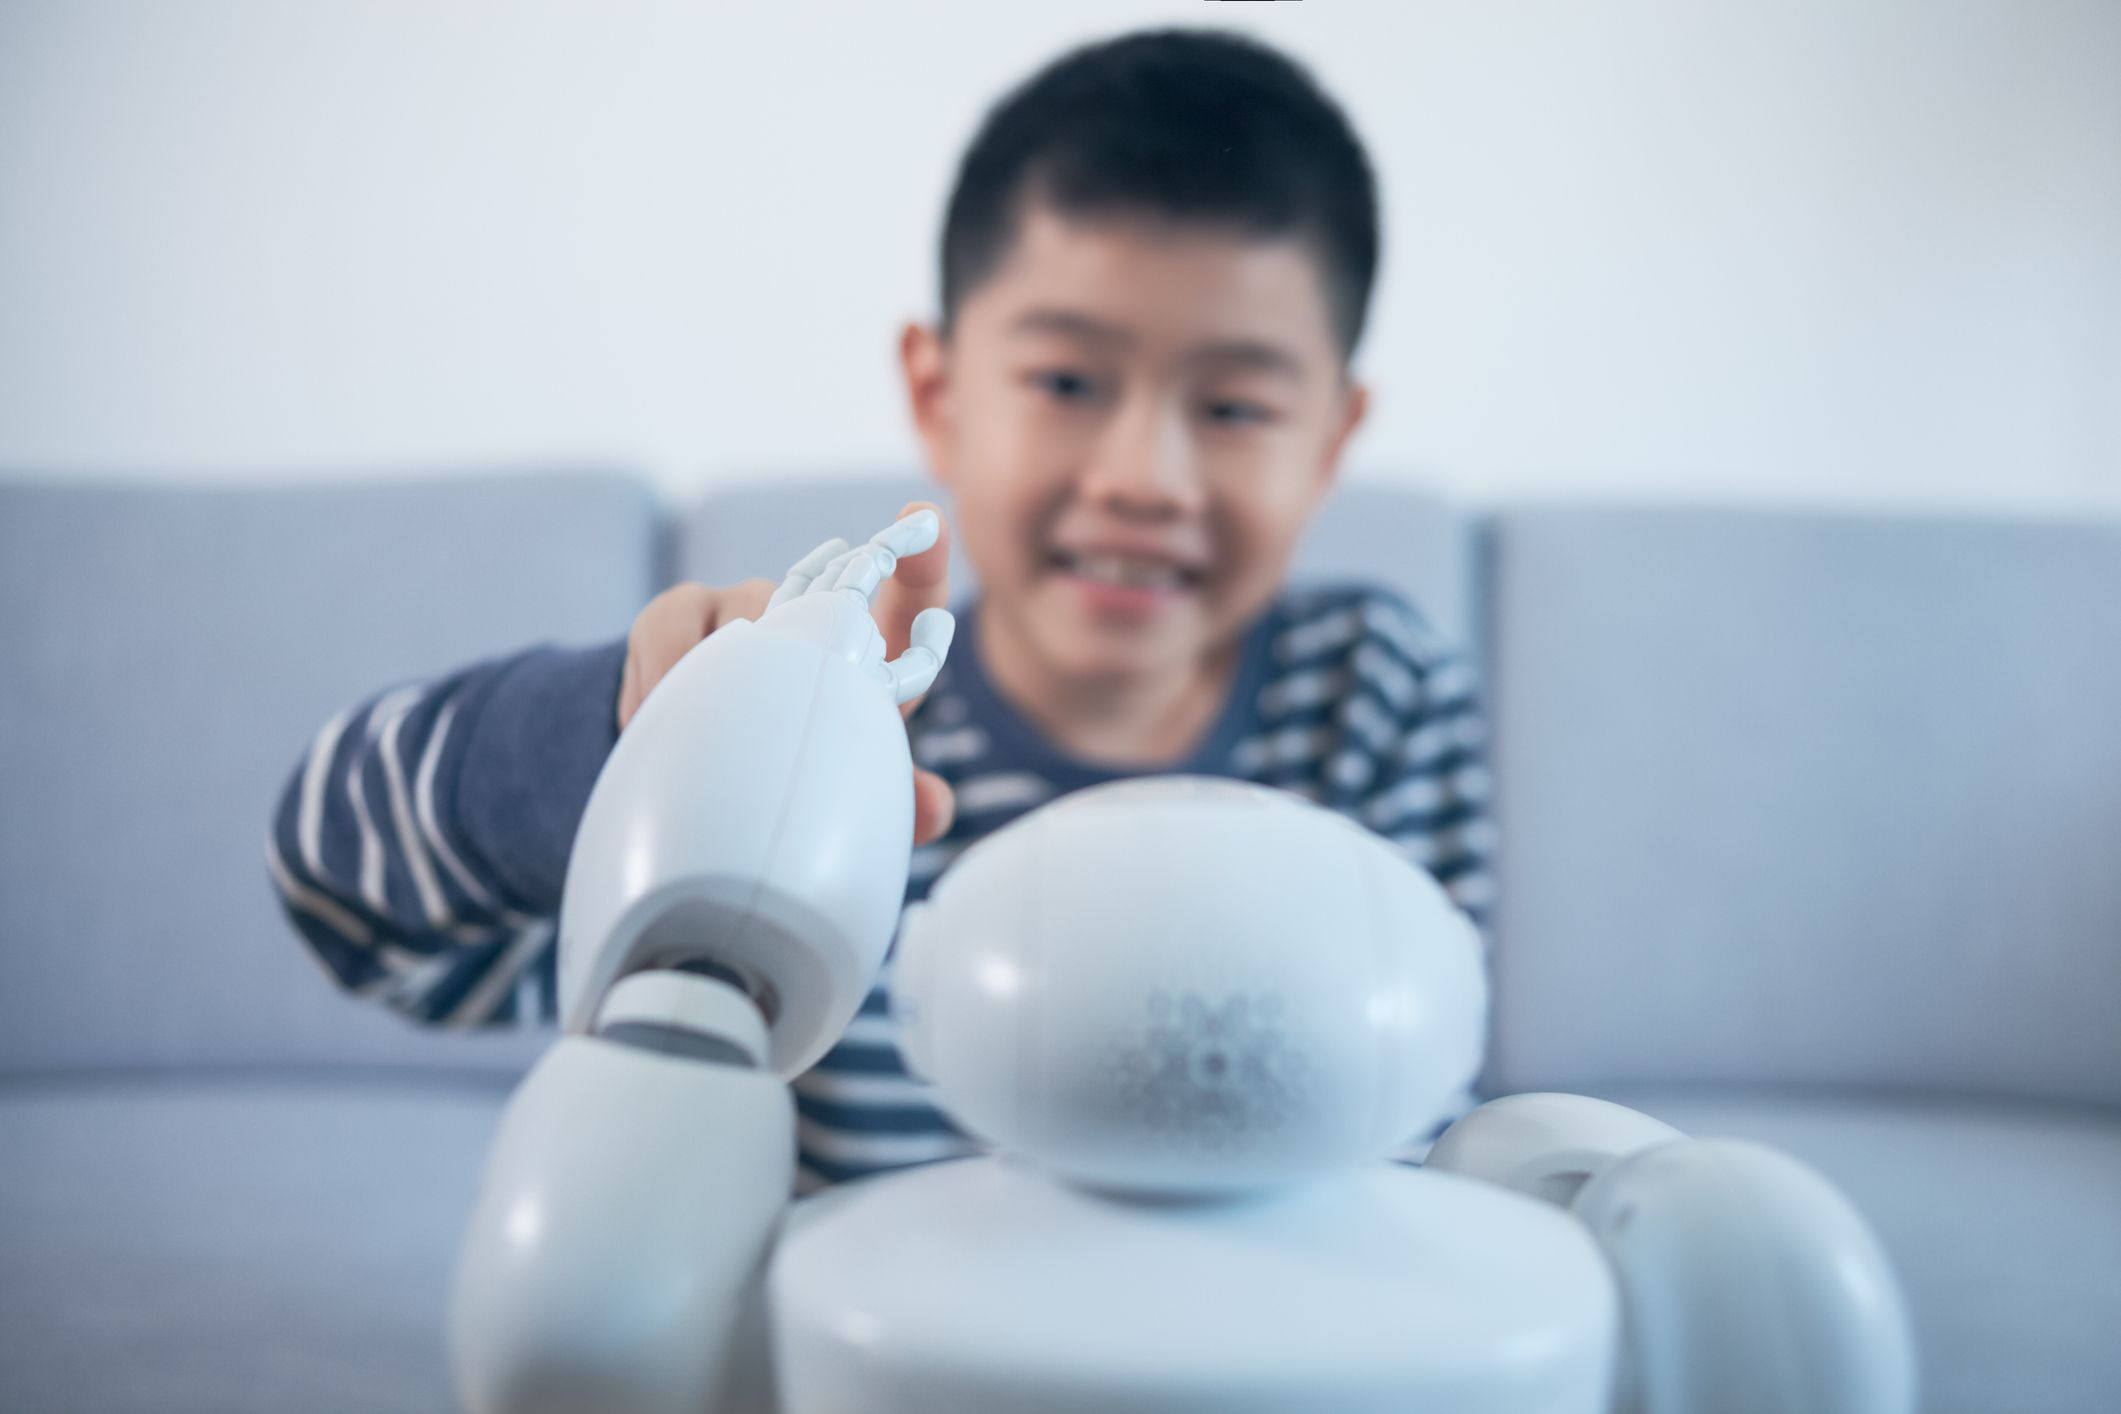 A child interacting with a robot.